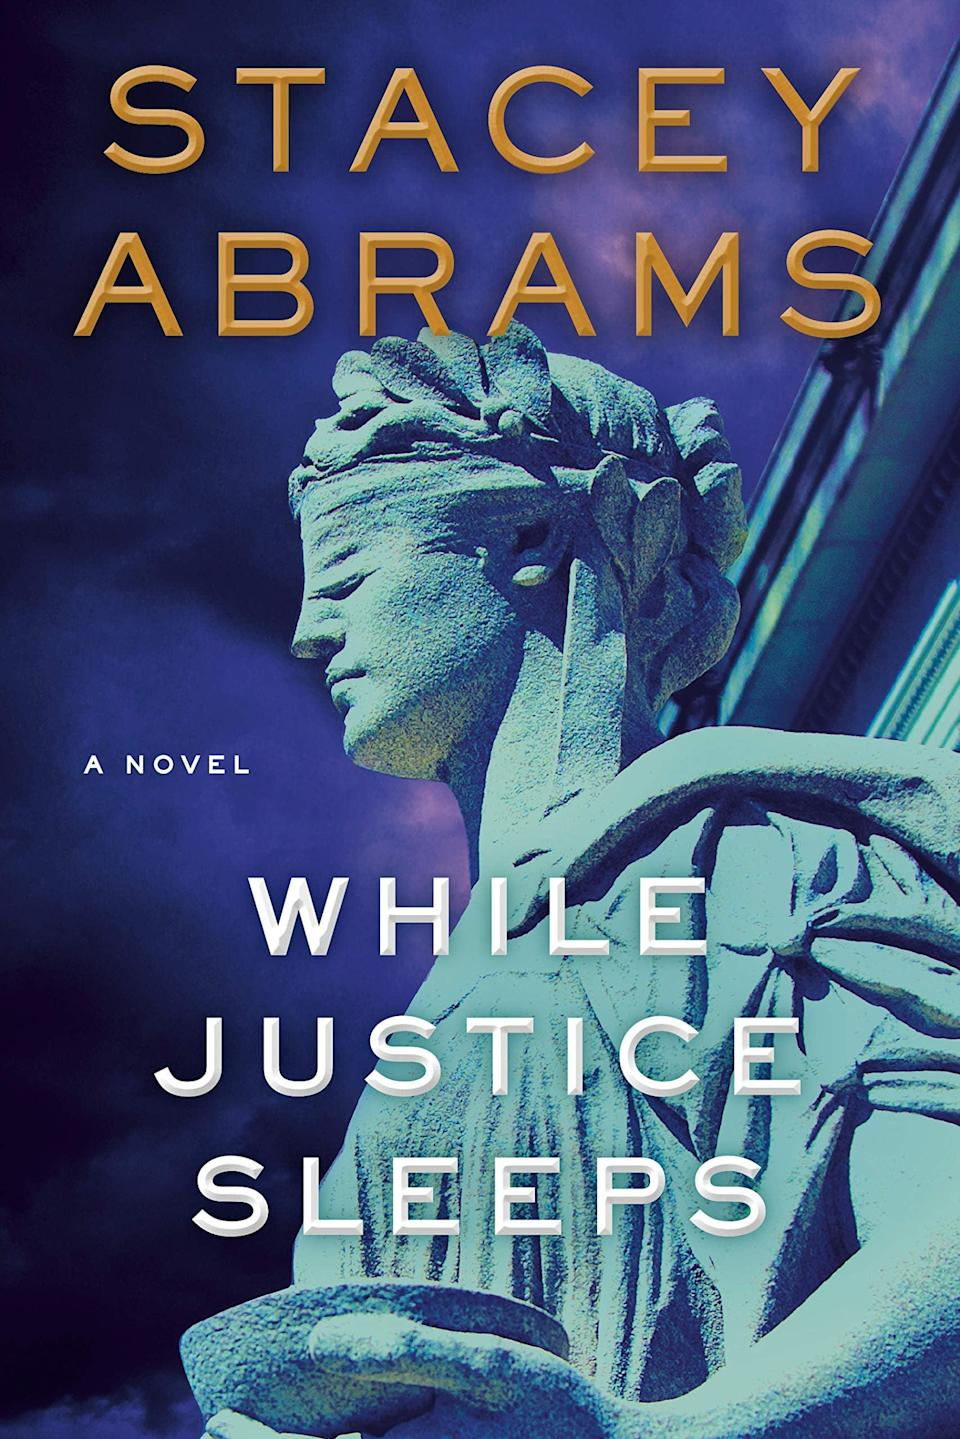 <p>Bestselling author and national leader Stacey Abrams's latest book, <span><strong>While Justice Sleeps</strong></span>, is a taut thriller set within the halls of the Supreme Court. When Justice Howard Wynn, who is notorious for his swing vote, slips into a coma, his law clerk Avery Keene becomes his legal guardian and power of attorney. As a result, she becomes privy to his research into the proposed merger of an American biotech company and an Indian genetics firm that connects to a conspiracy that runs straight through the heart of Washington. </p> <p><em>Out May 11</em></p>